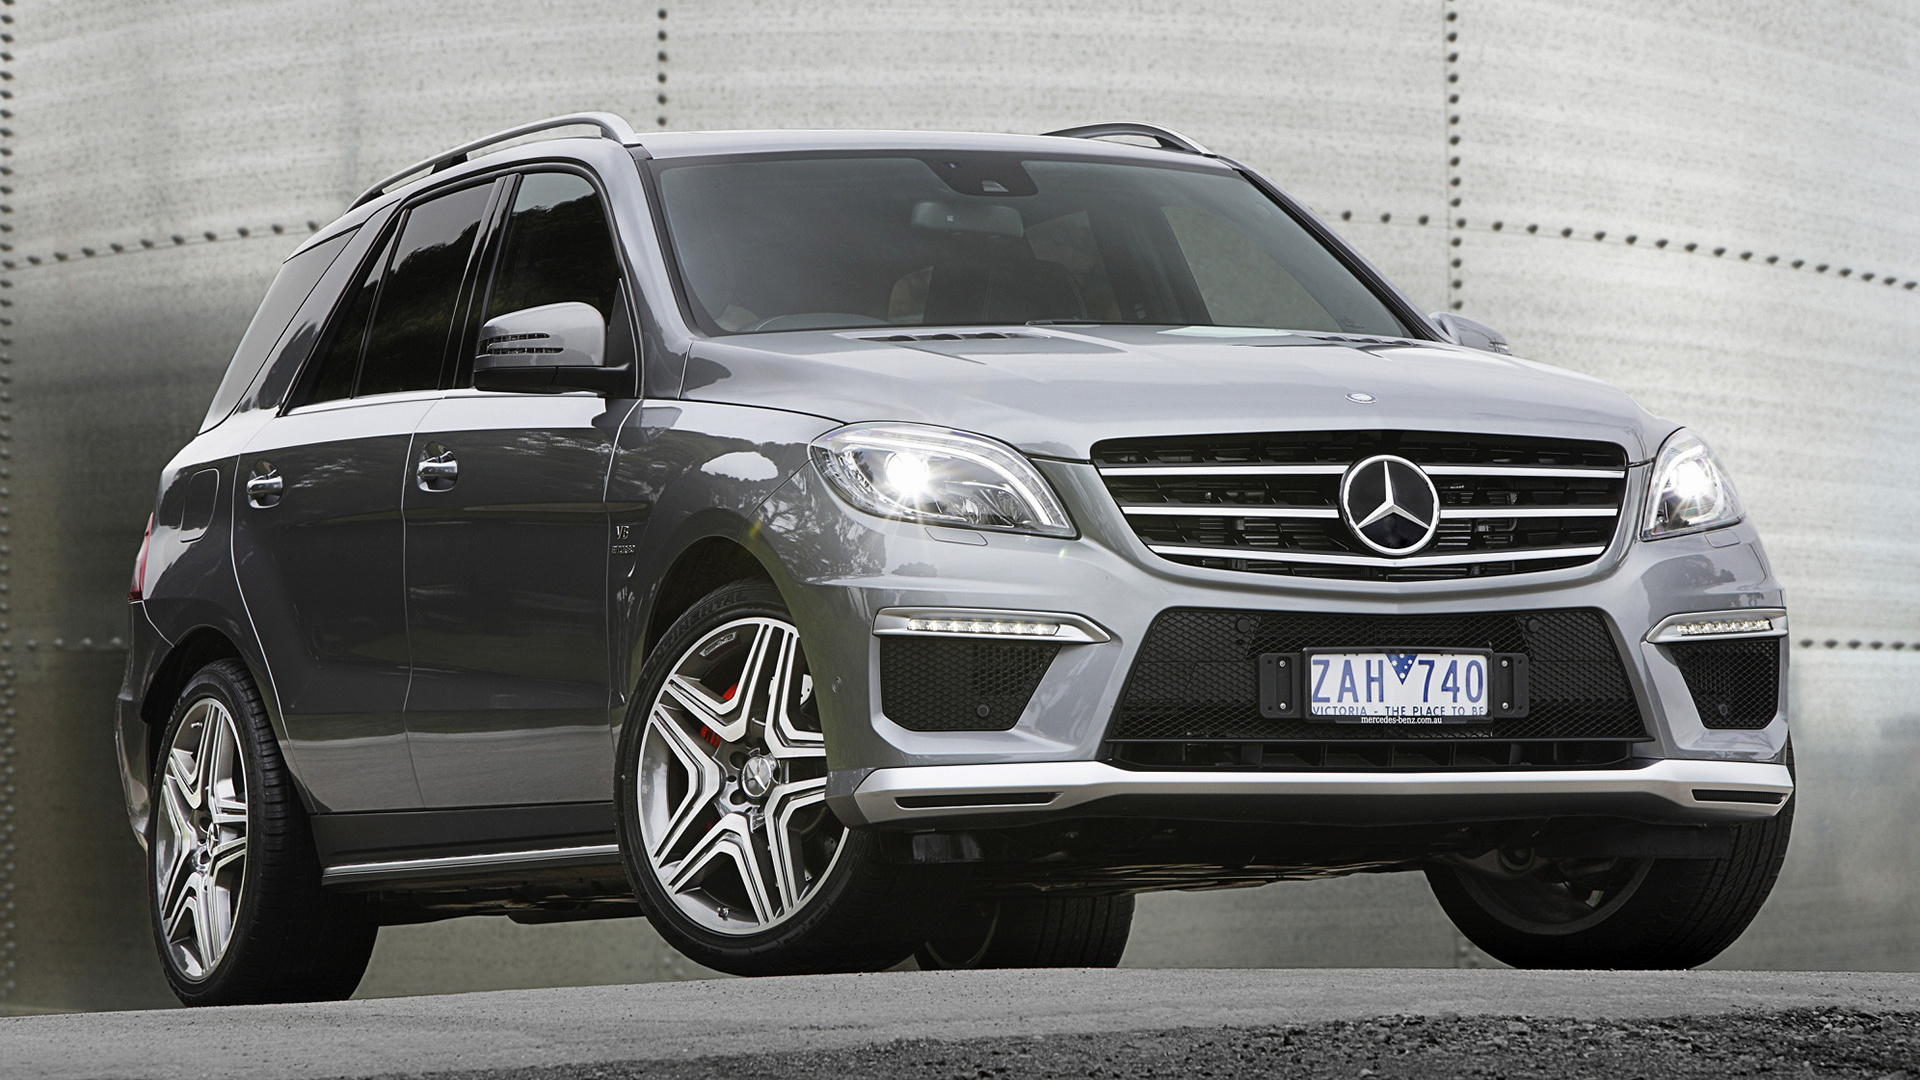 2012 mercedes benz ml 63 amg au wallpapers and hd. Black Bedroom Furniture Sets. Home Design Ideas